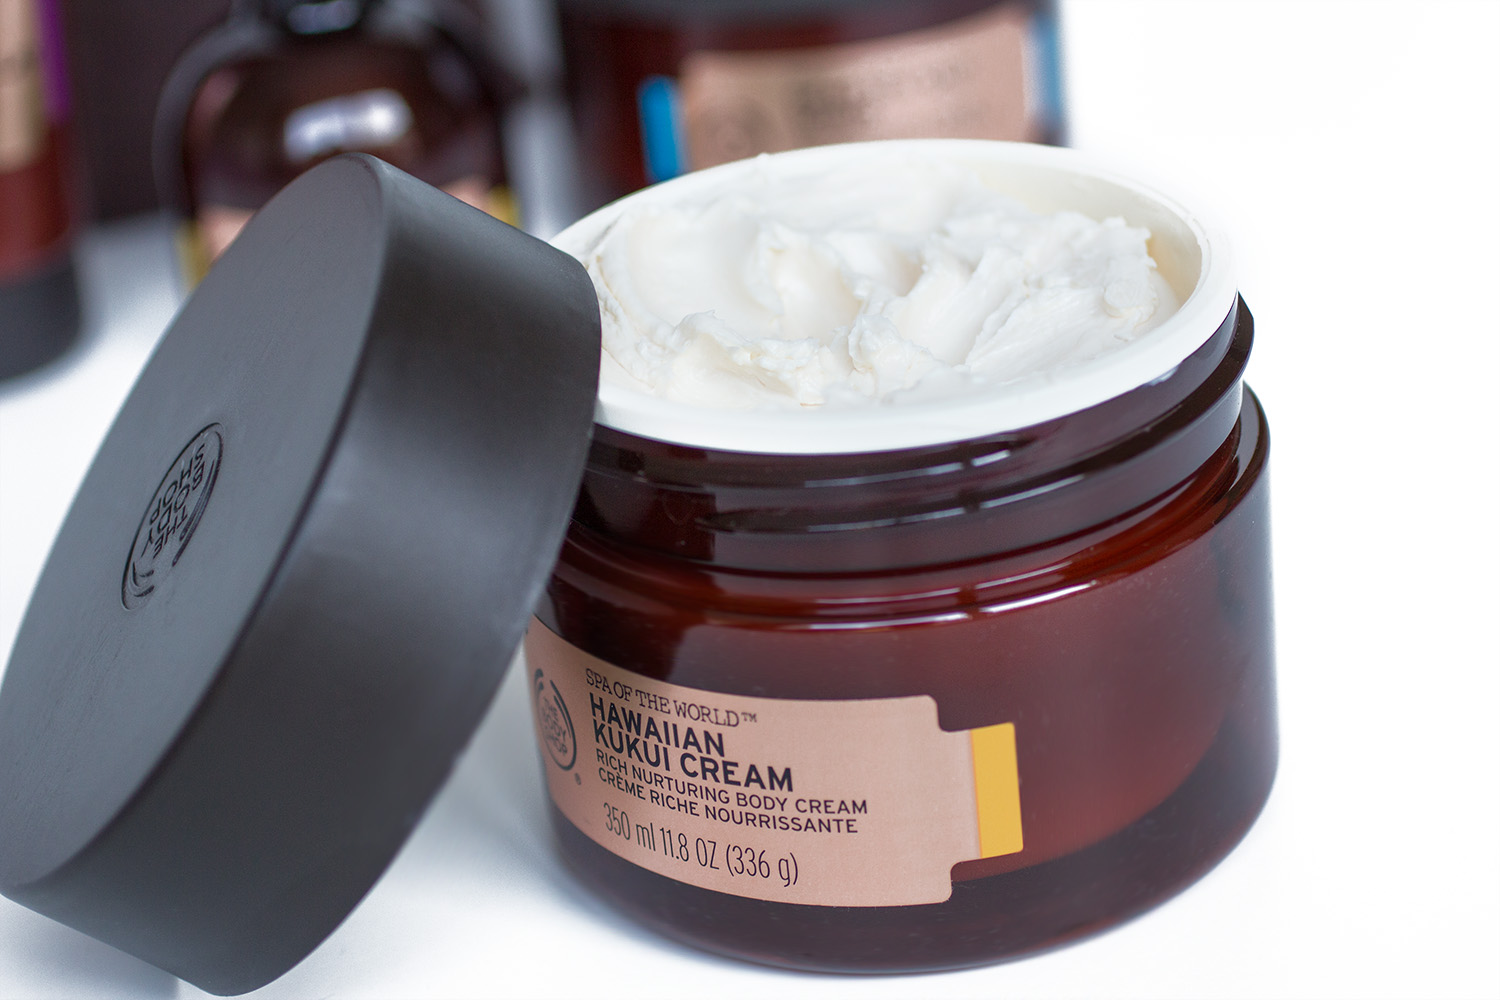 Spa of the World / Crème riche nourrissante - The Body Shop